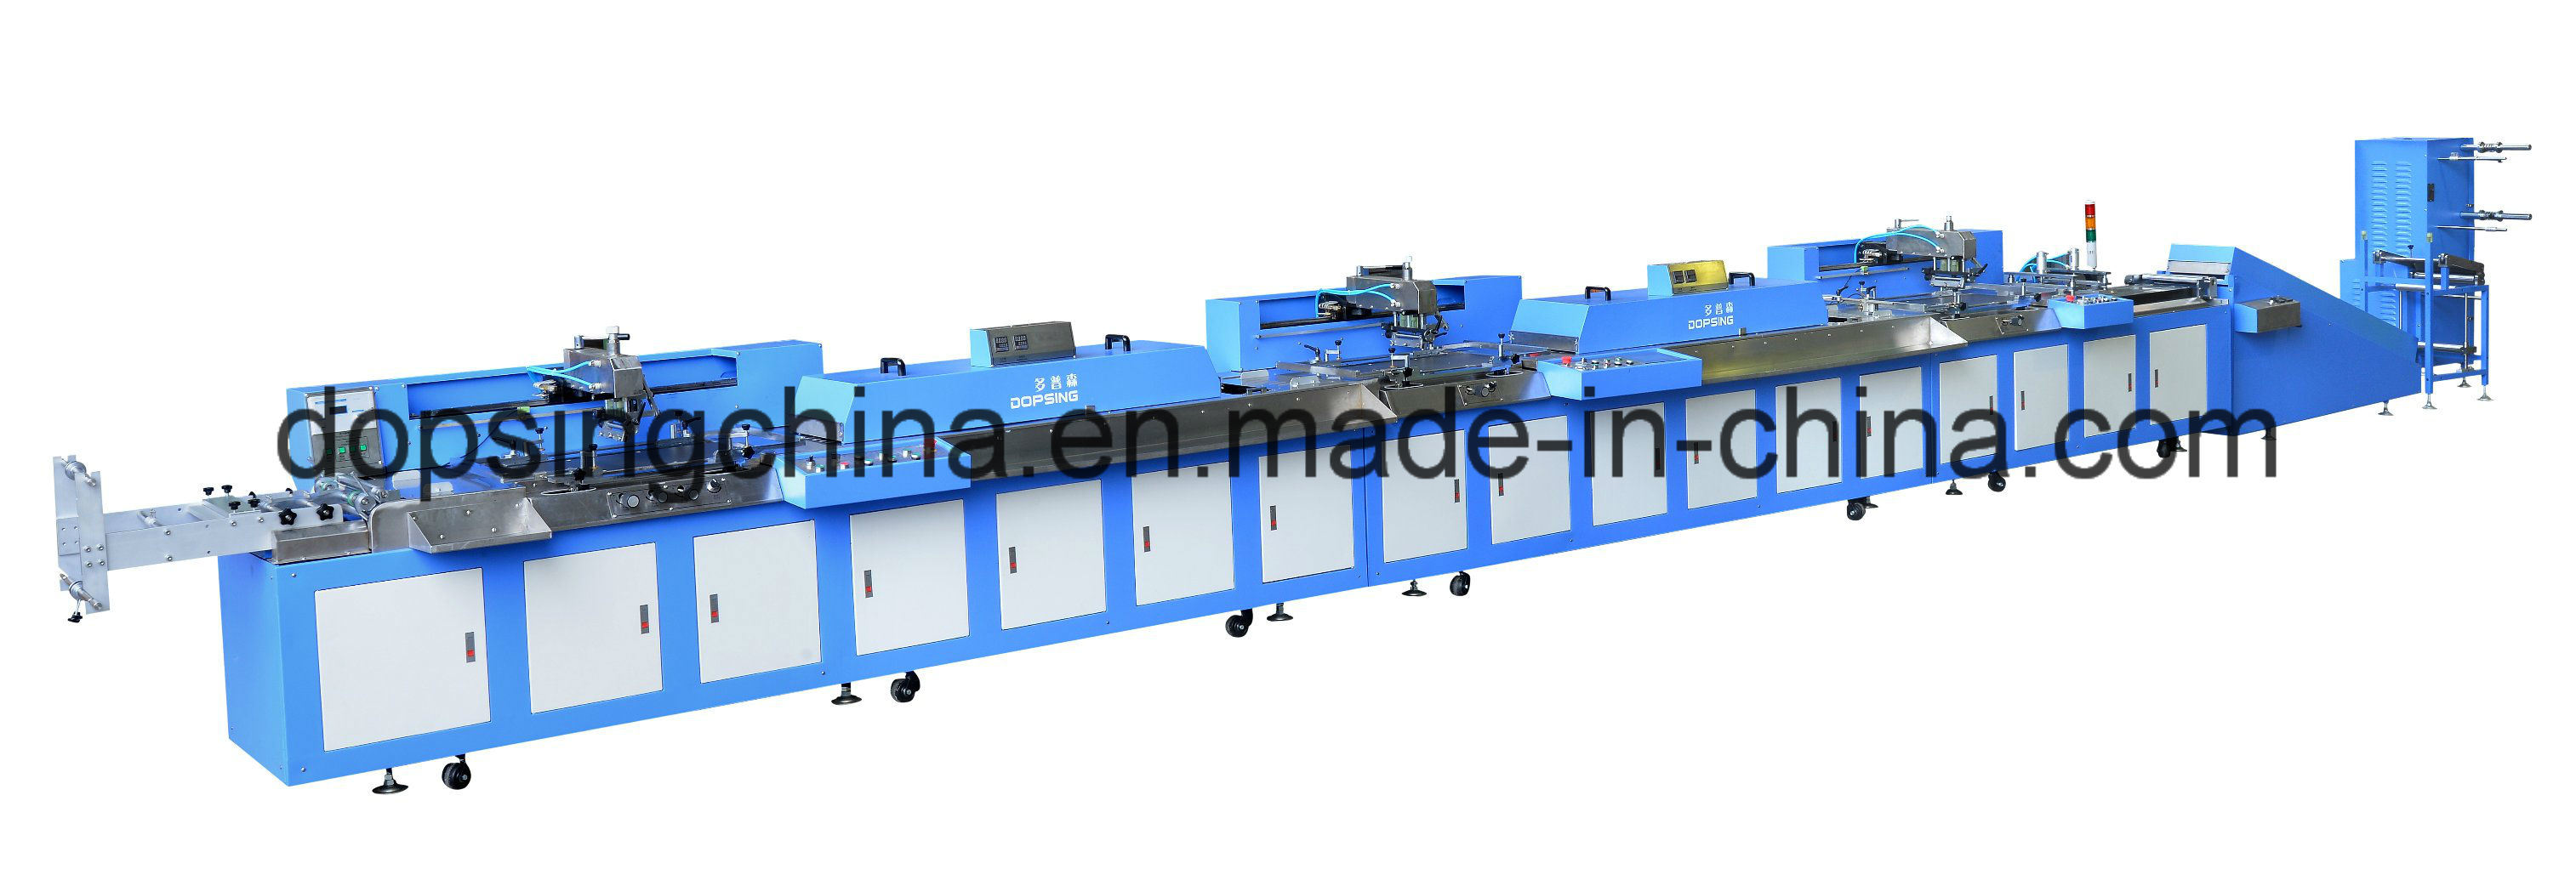 Fixed Competitive Price Automatic Tube Screen Printing Machine -